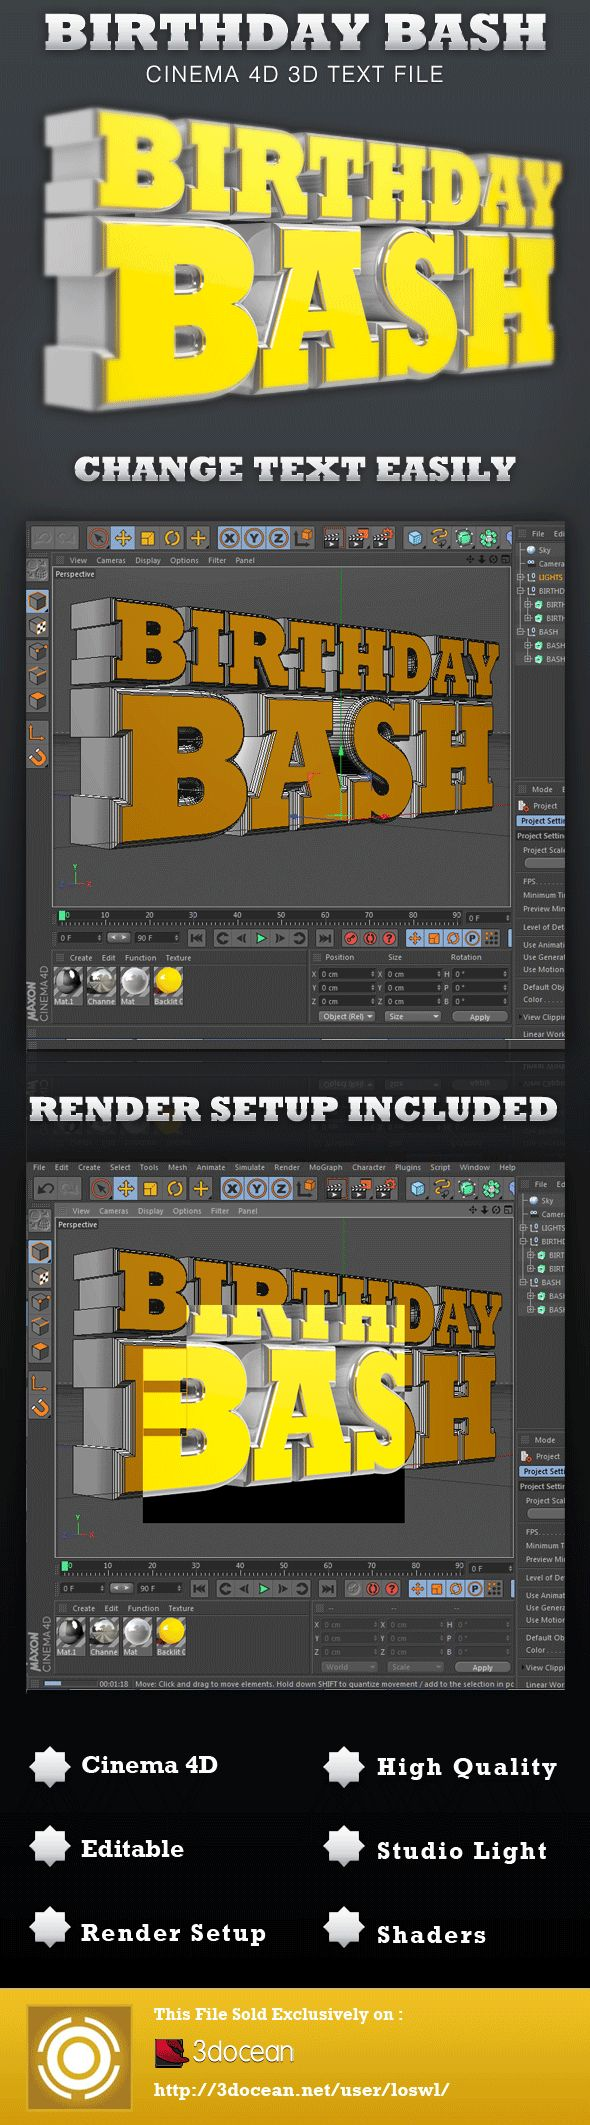 This Birthday Bash Cinema 4D 3D Text File is sold exclusively on 3DOcean, it can be used for Birthday Party Flyers/Posters and Animations, or any design project that need a 3D Element. In this package you'll find 1 Cinema 4D File. The file includes shaders and light setup for rendering. All objects are grouped and named for easy editing. - $4.00